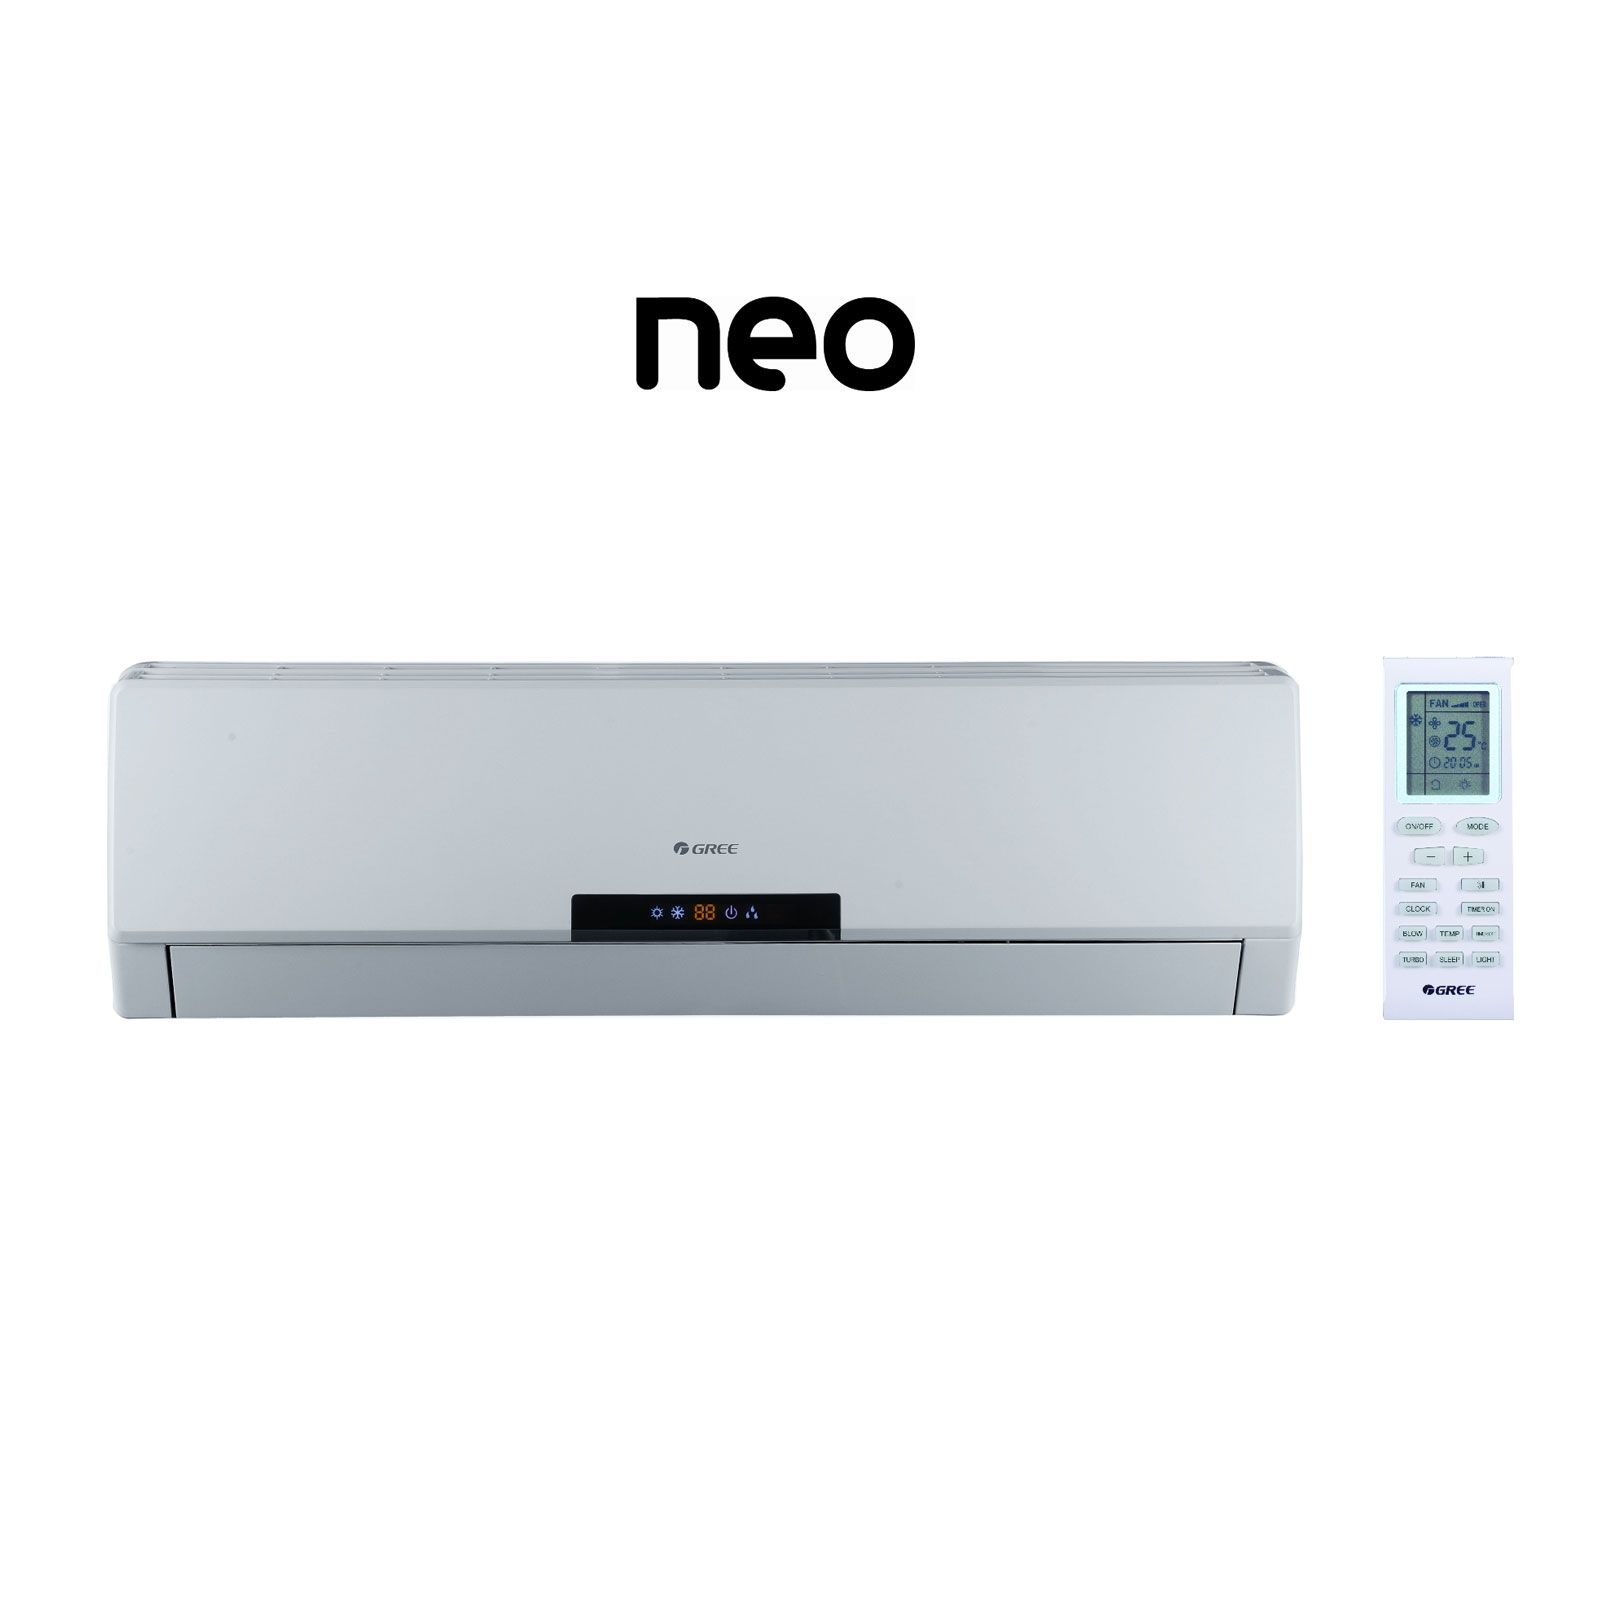 GREE NEO30HP230V1AH - 2 1/2 Ton 16 SEER NEO Ductless Mini-Split Indoor Unit 208-230 V